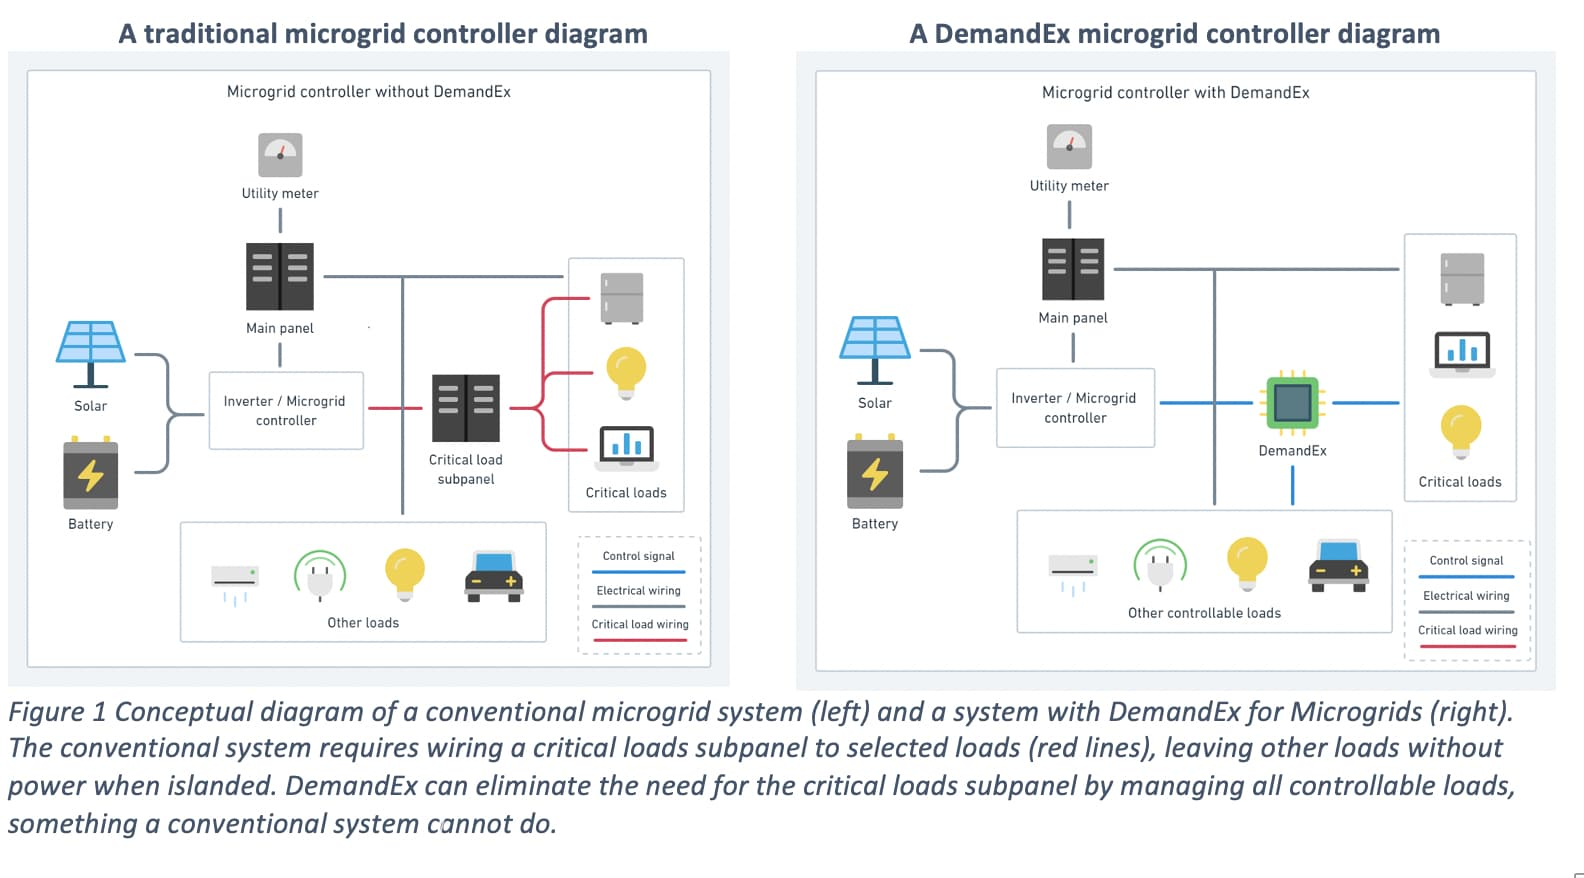 Load management software DemandEx now integrates with microgrid controllers, reduces need to rewire